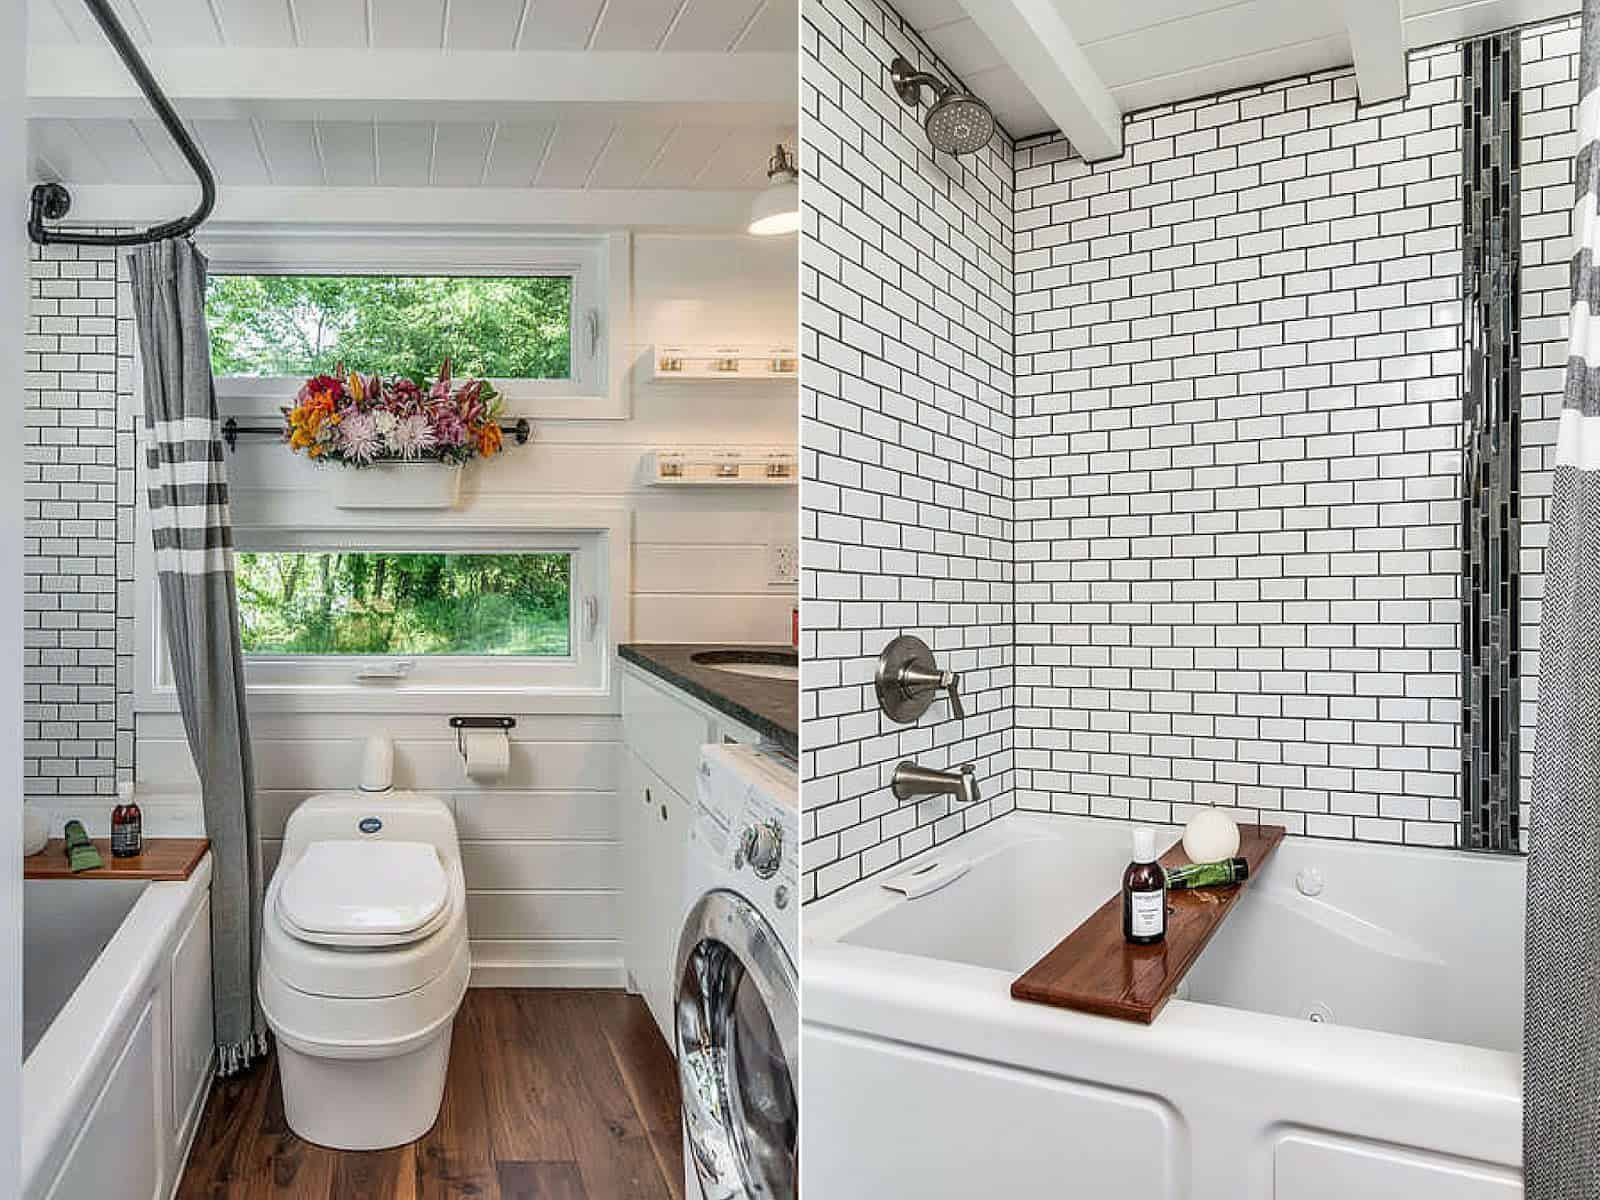 Another example of an efficient tiny house bathroom with a tub as well as a washing machine and dryer. The dark wood floor contrasts very nicely with the white wood walls as well as the subway tile walls surrounding the tub.